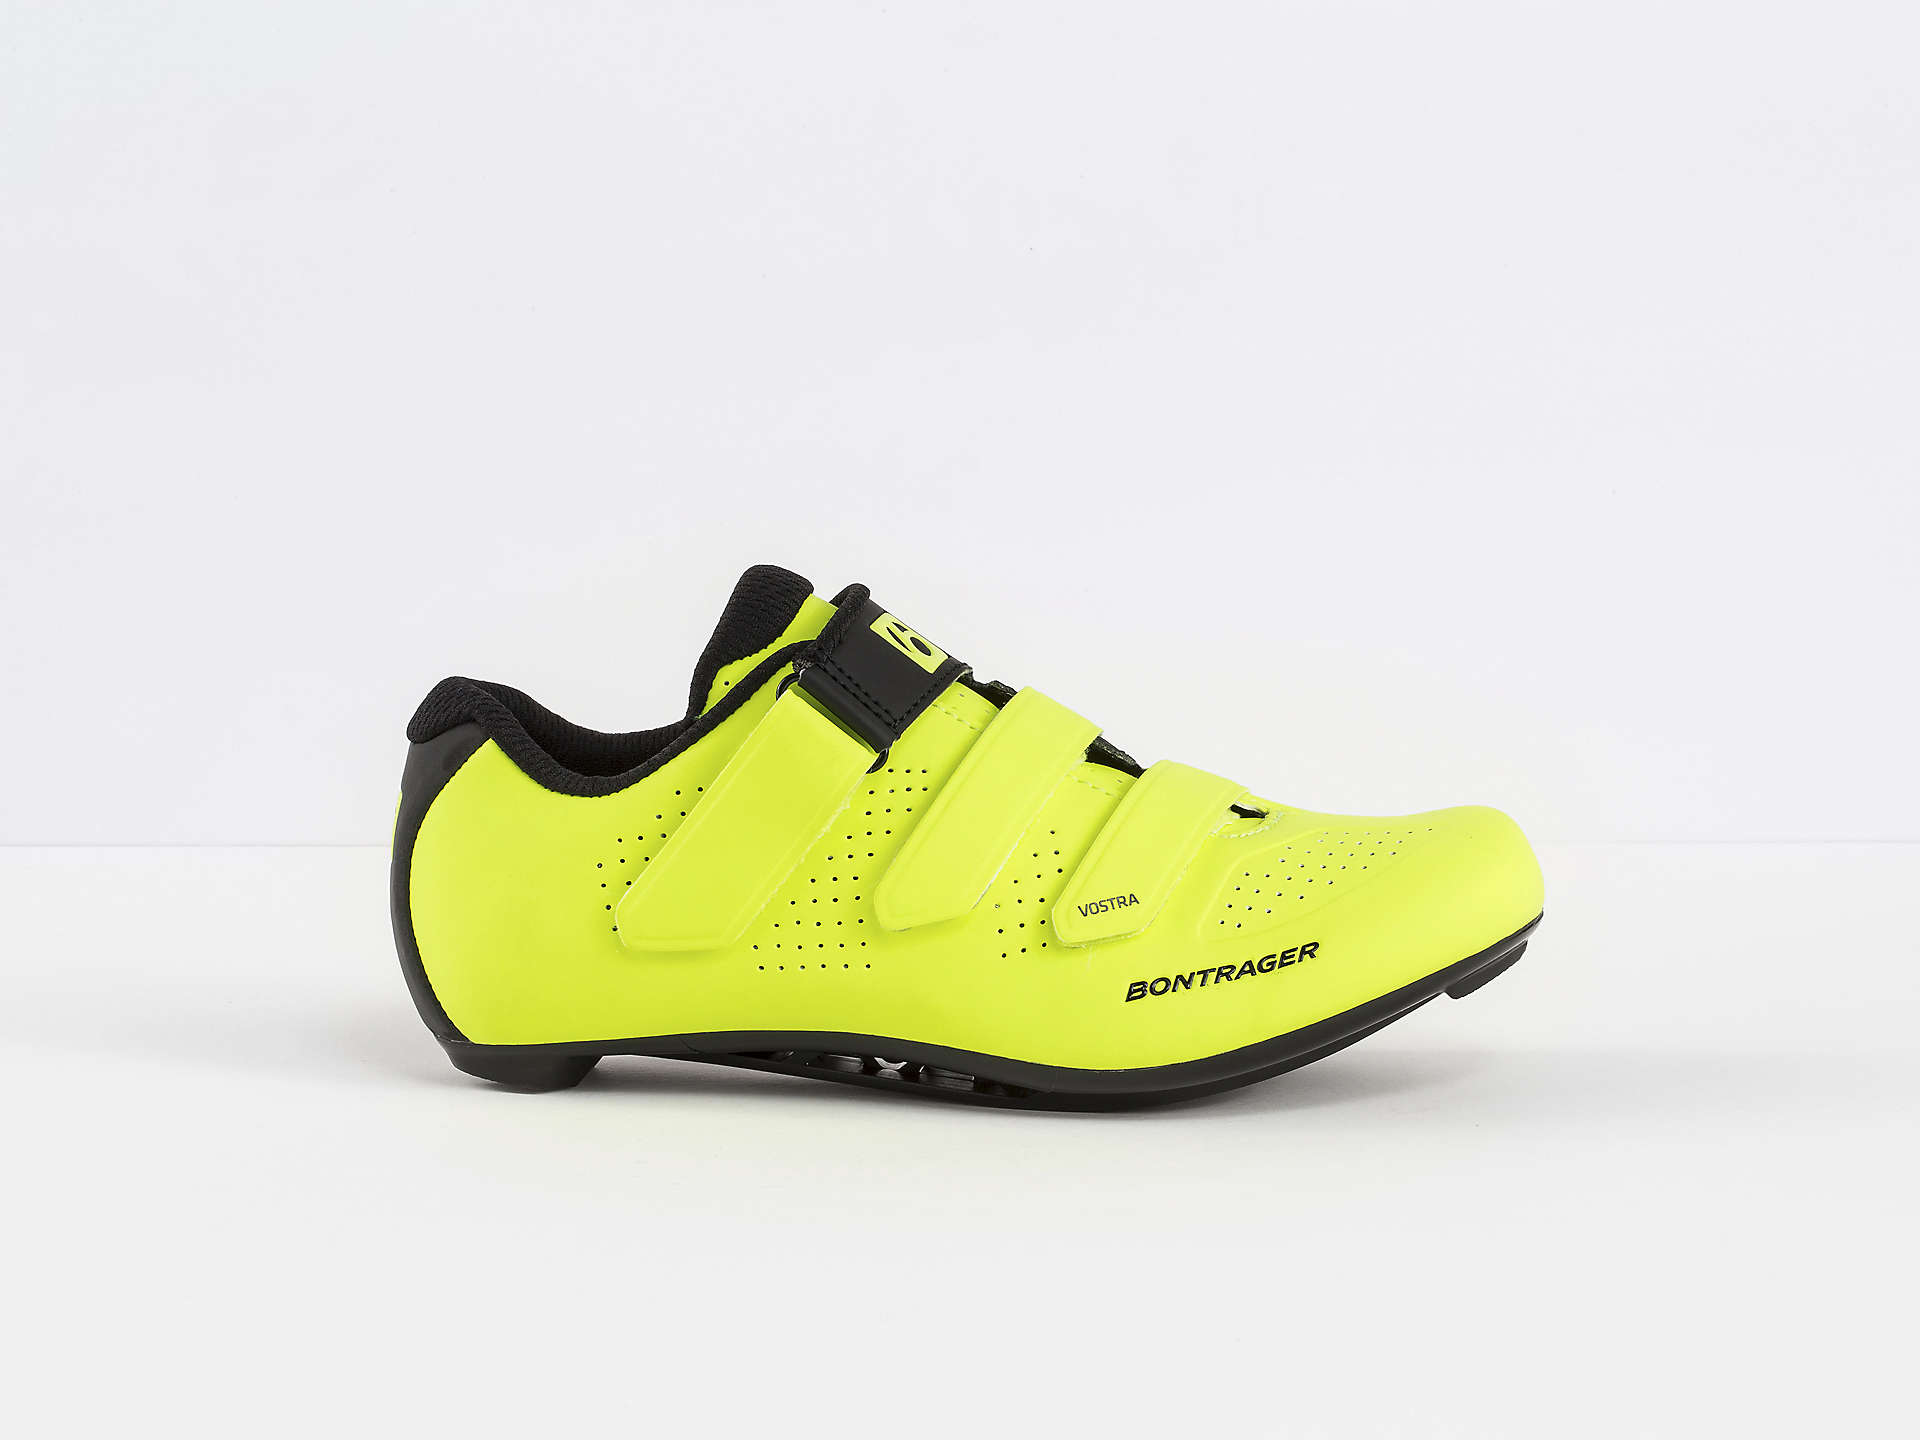 BONTRAGER VOSTRA WOMENS ROAD CYCLING SHOES VISIBILITY YELLOW